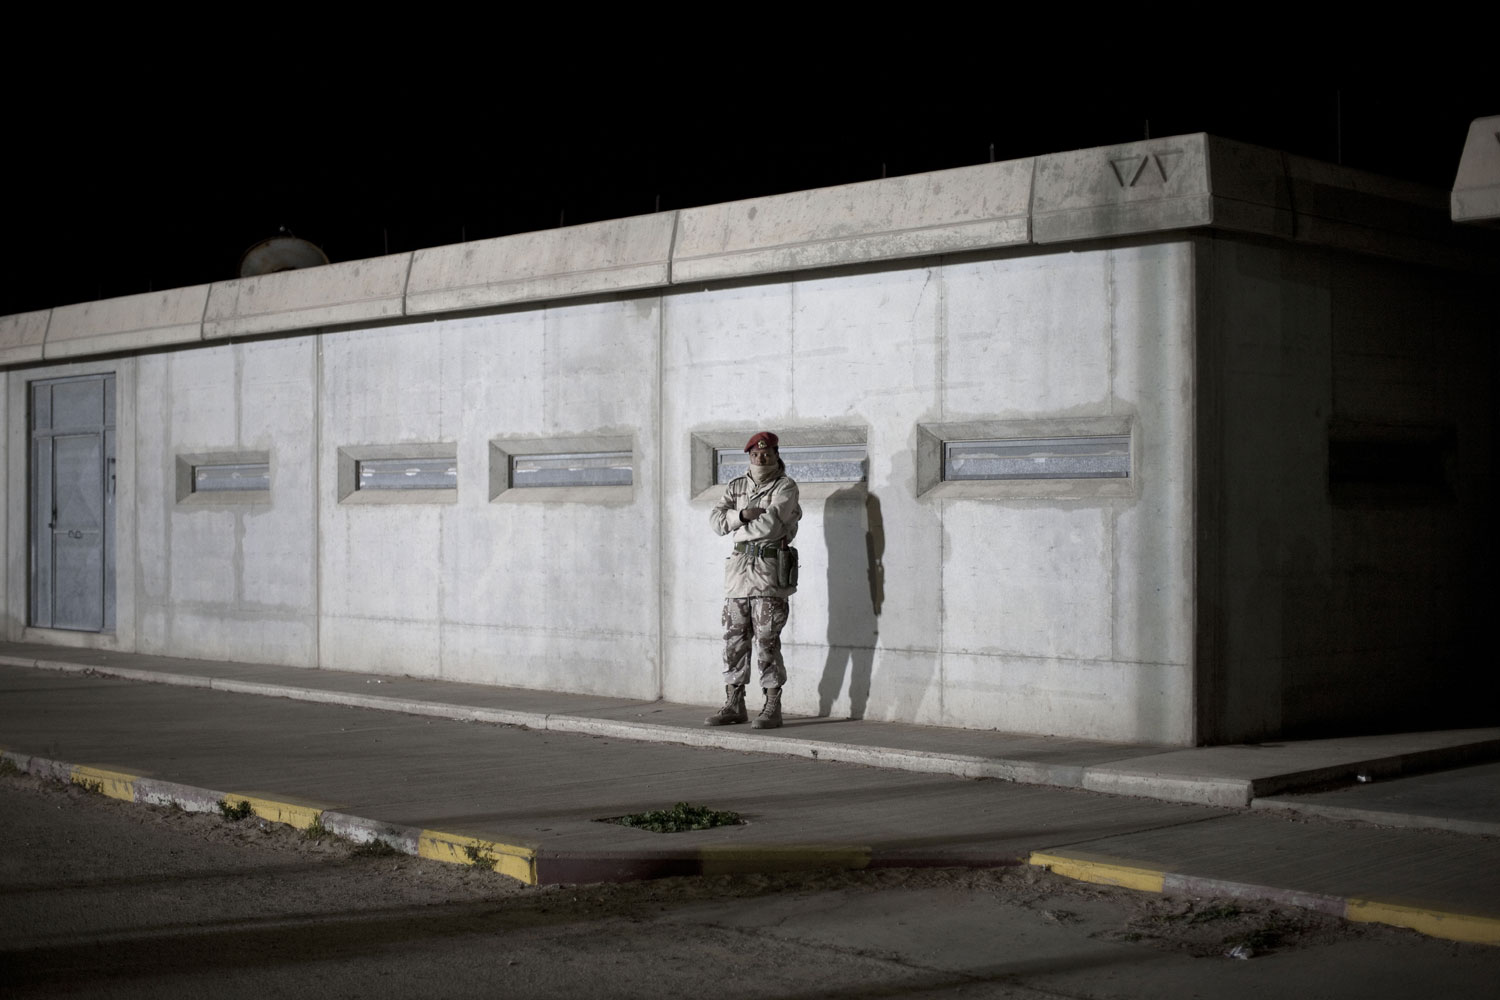 A Libyan soldier at nightfall, March 19, 2011.